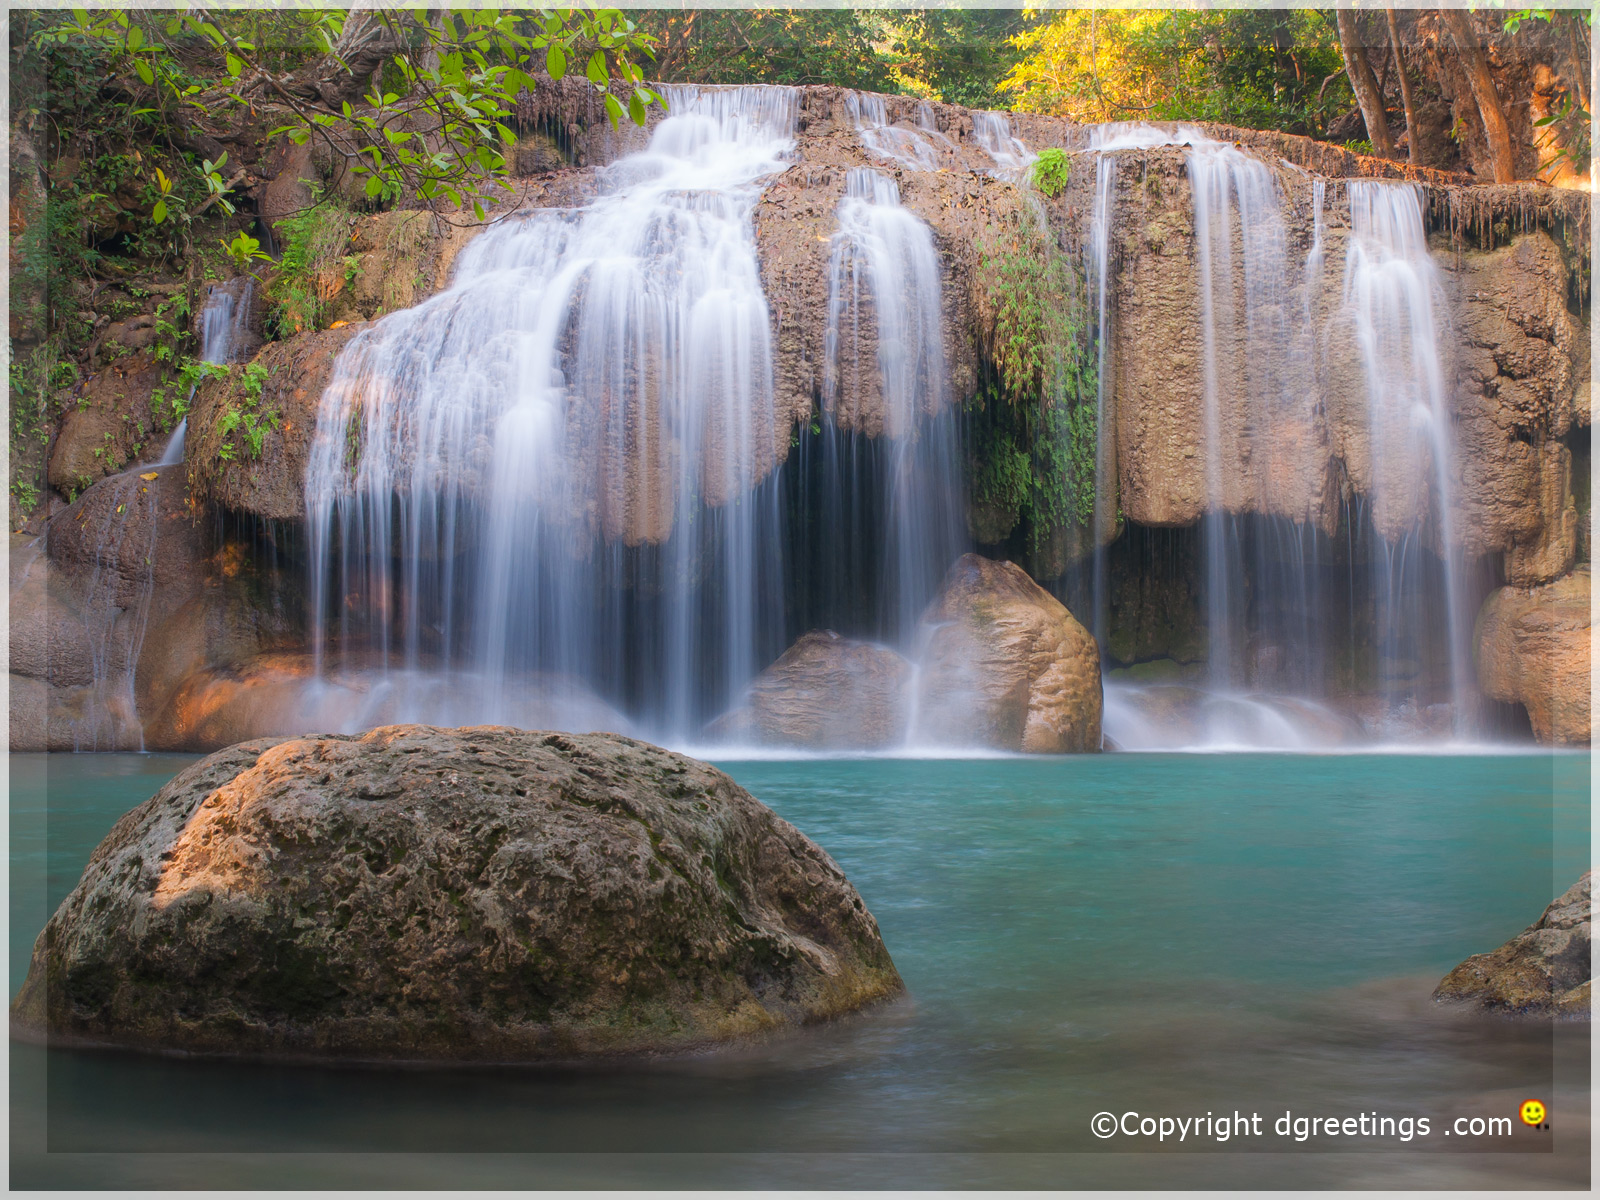 Waterfall Wallpapers Waterfall Wallpapers Animated Waterfall 1600x1200